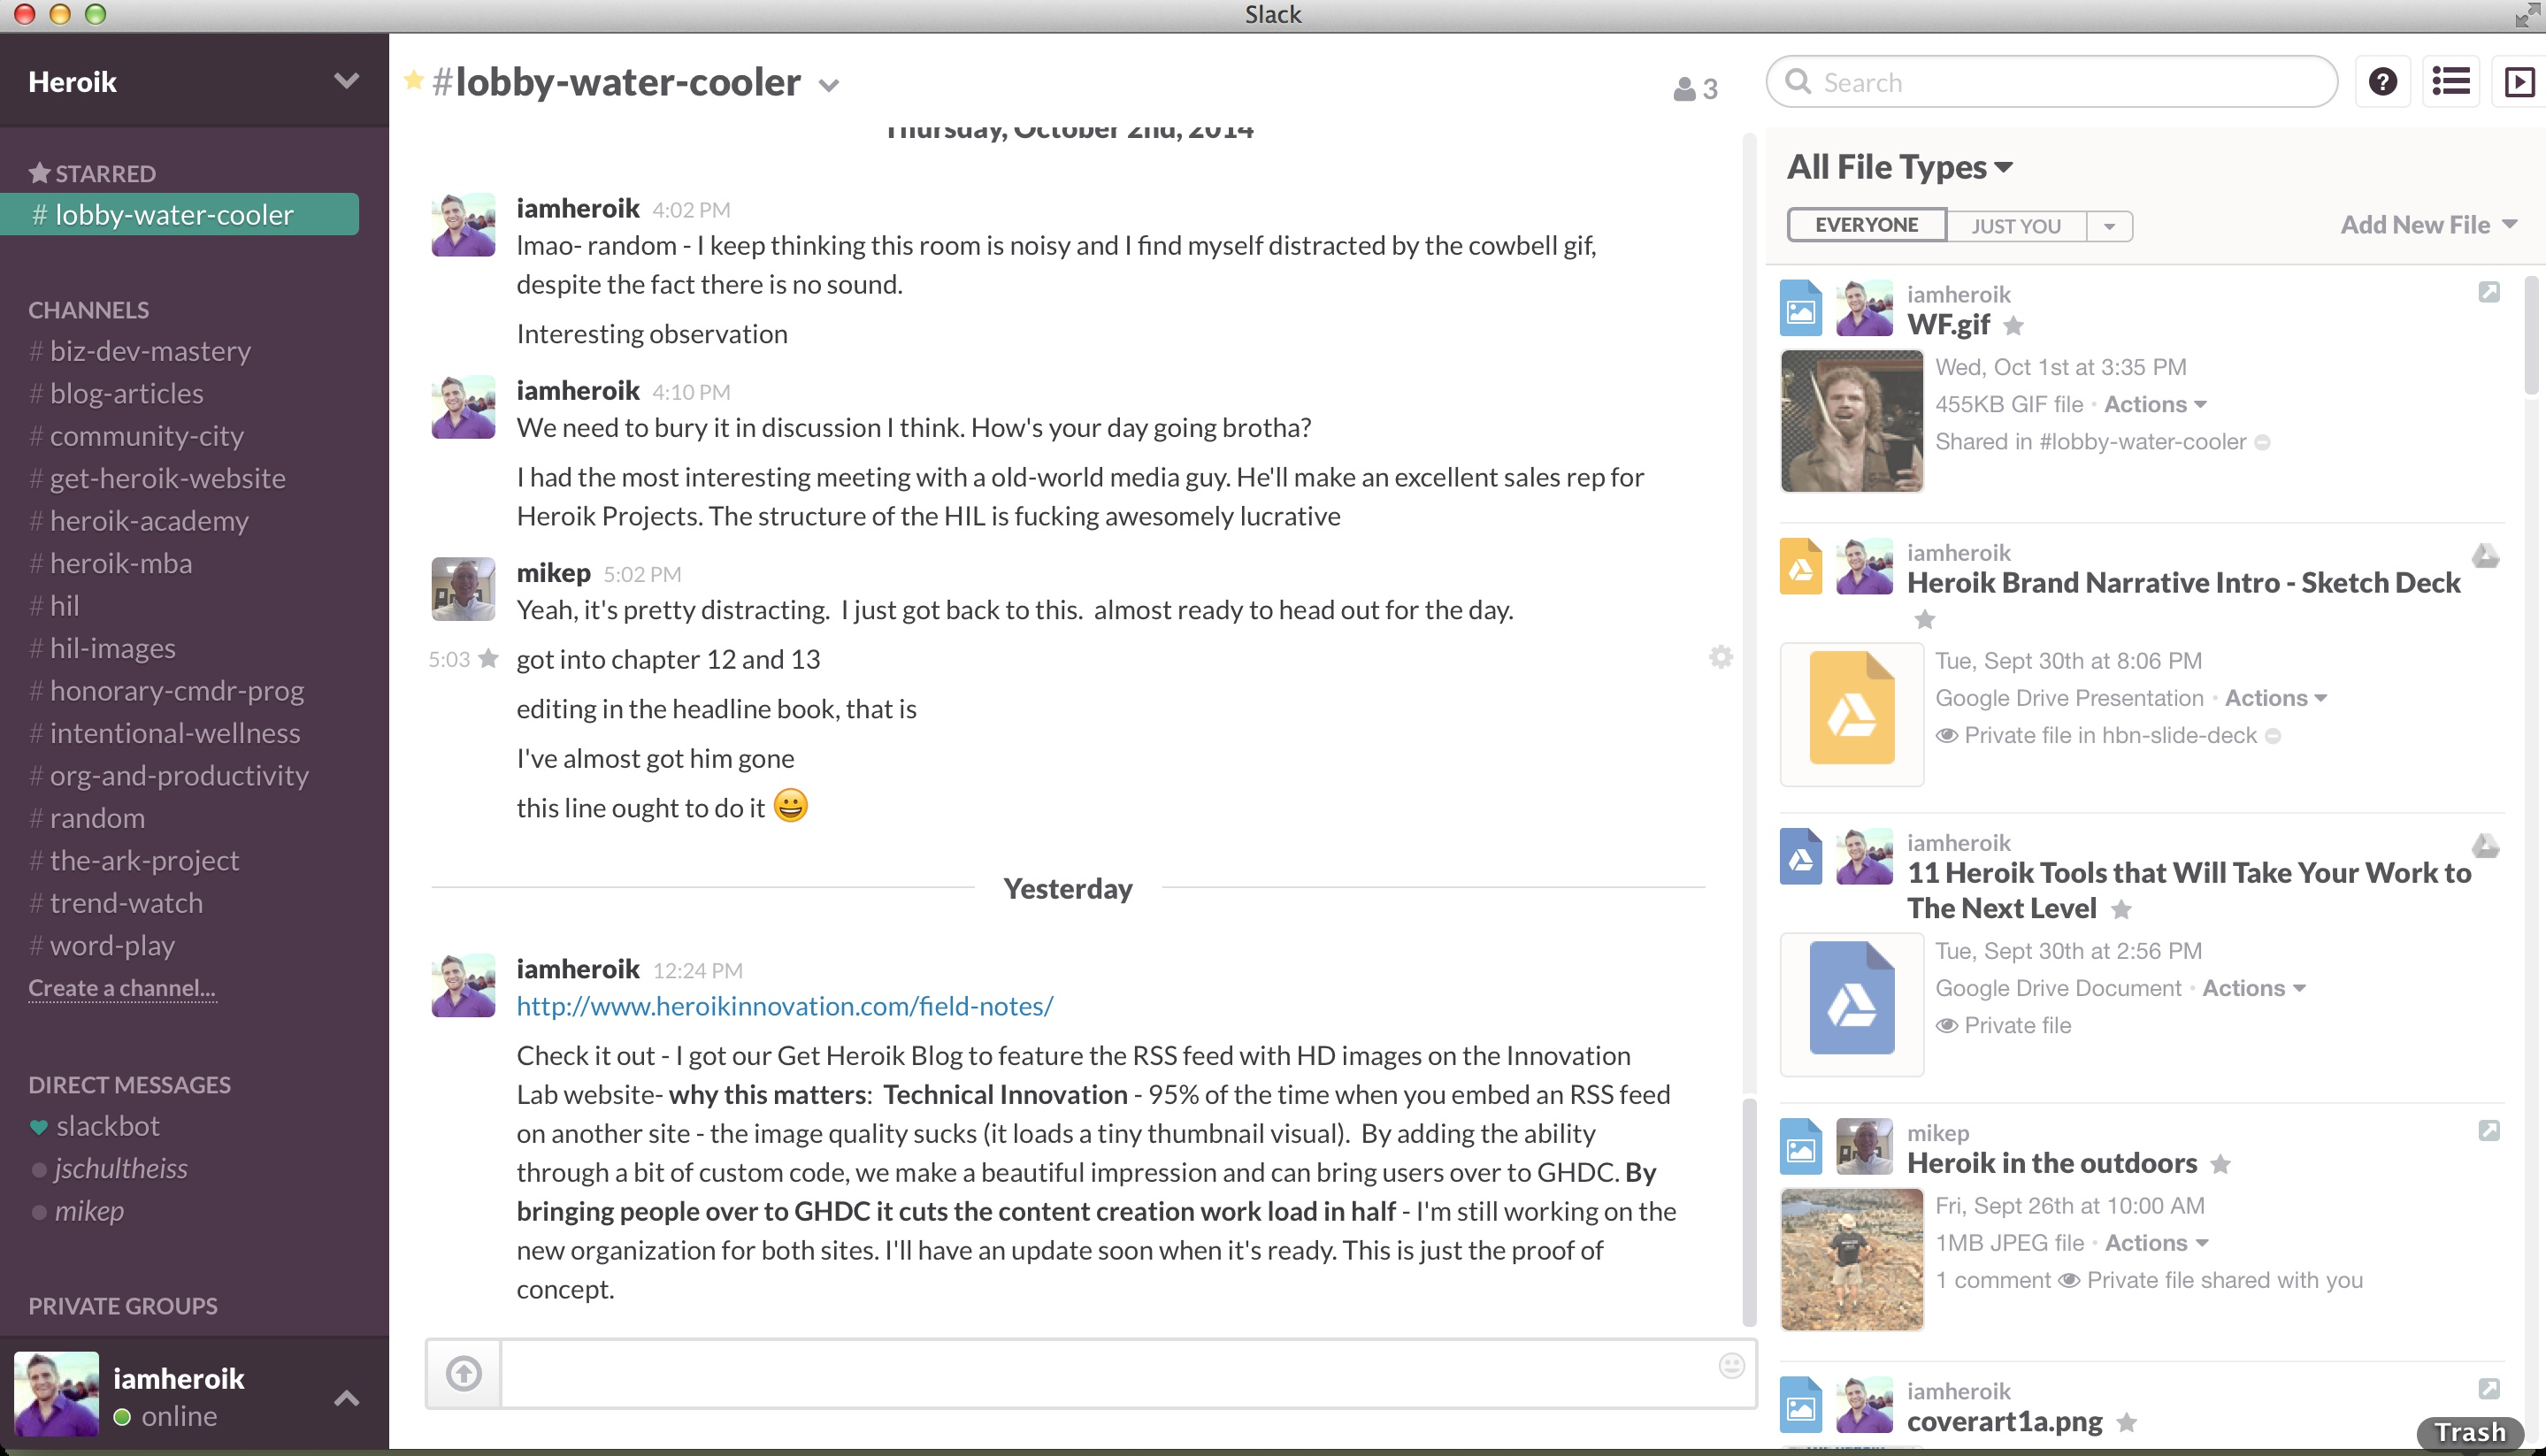 slack-web-communication-client-in-webbrowser-screenshot